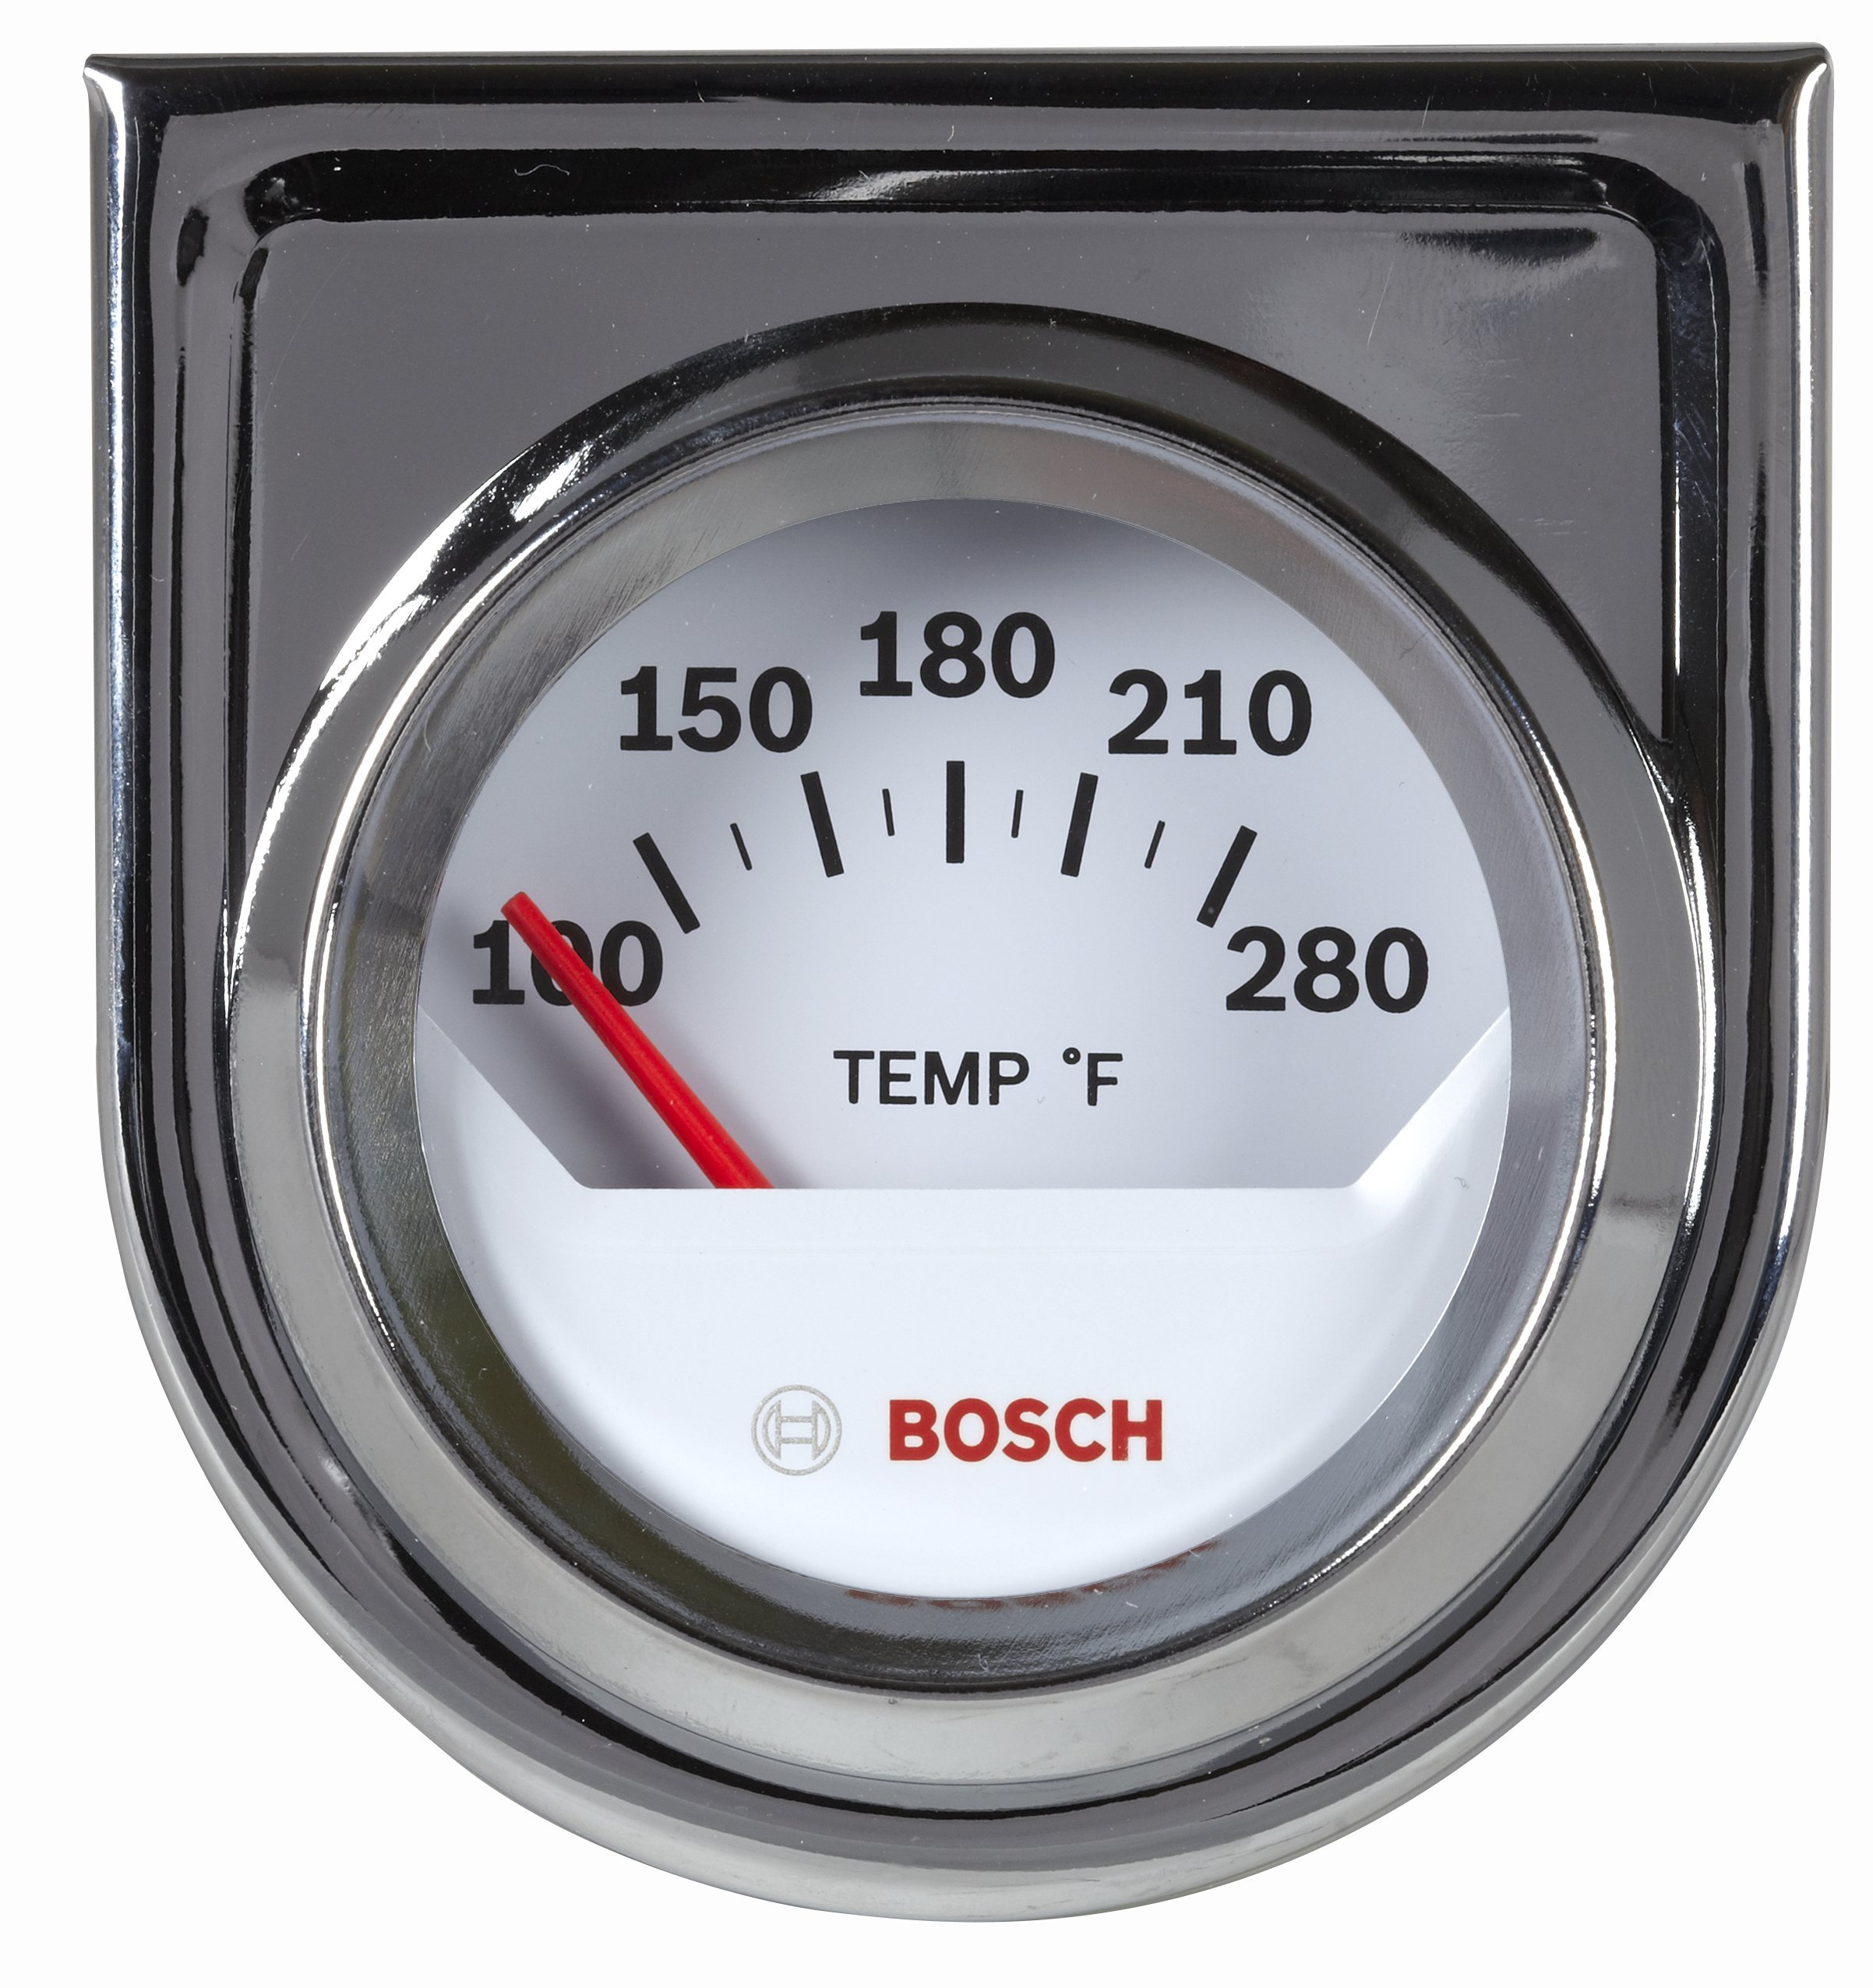 Bosch SP0F000040 Style Line 2'' Electrical Water/Oil Temperature Gauge (White Dial Face, Chrome Bezel) by Bosch Automotive